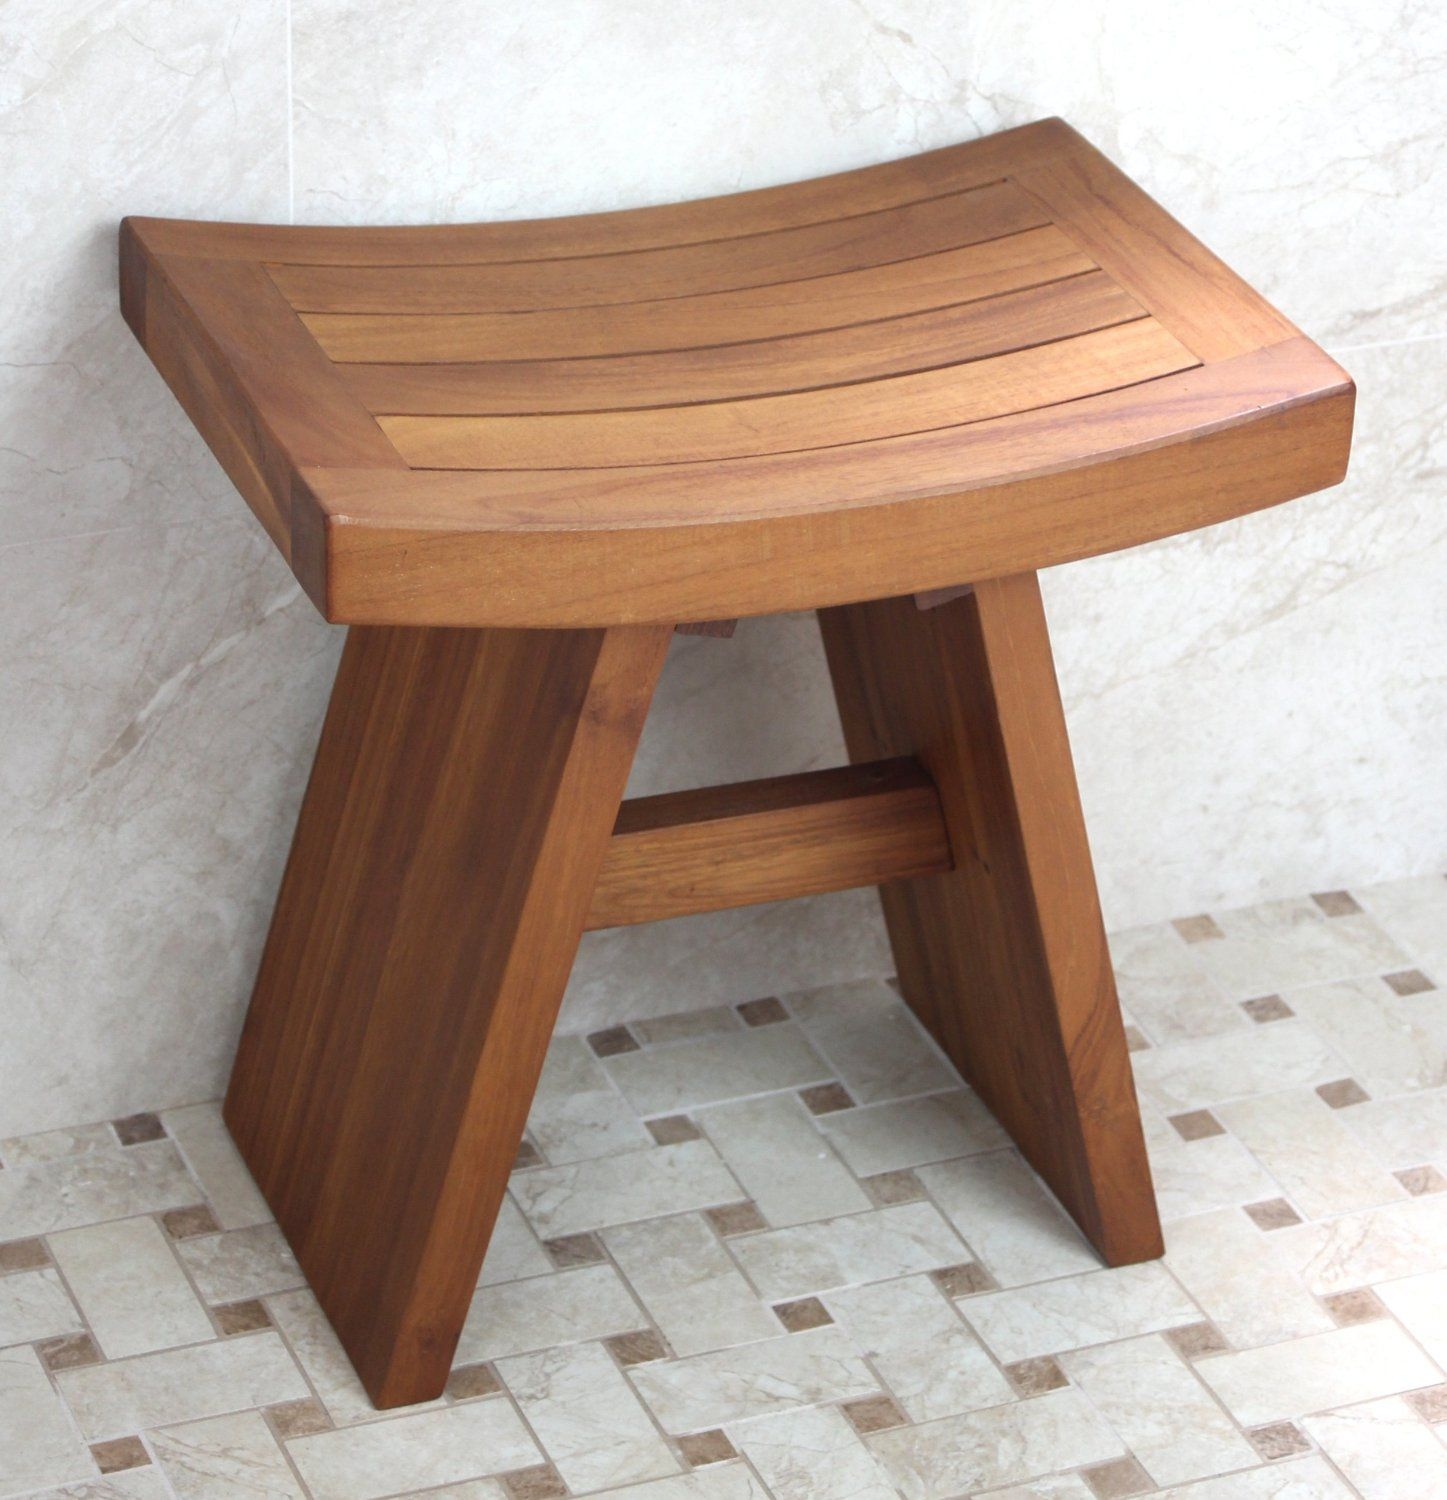 teak on bench side shower esthwaite seat